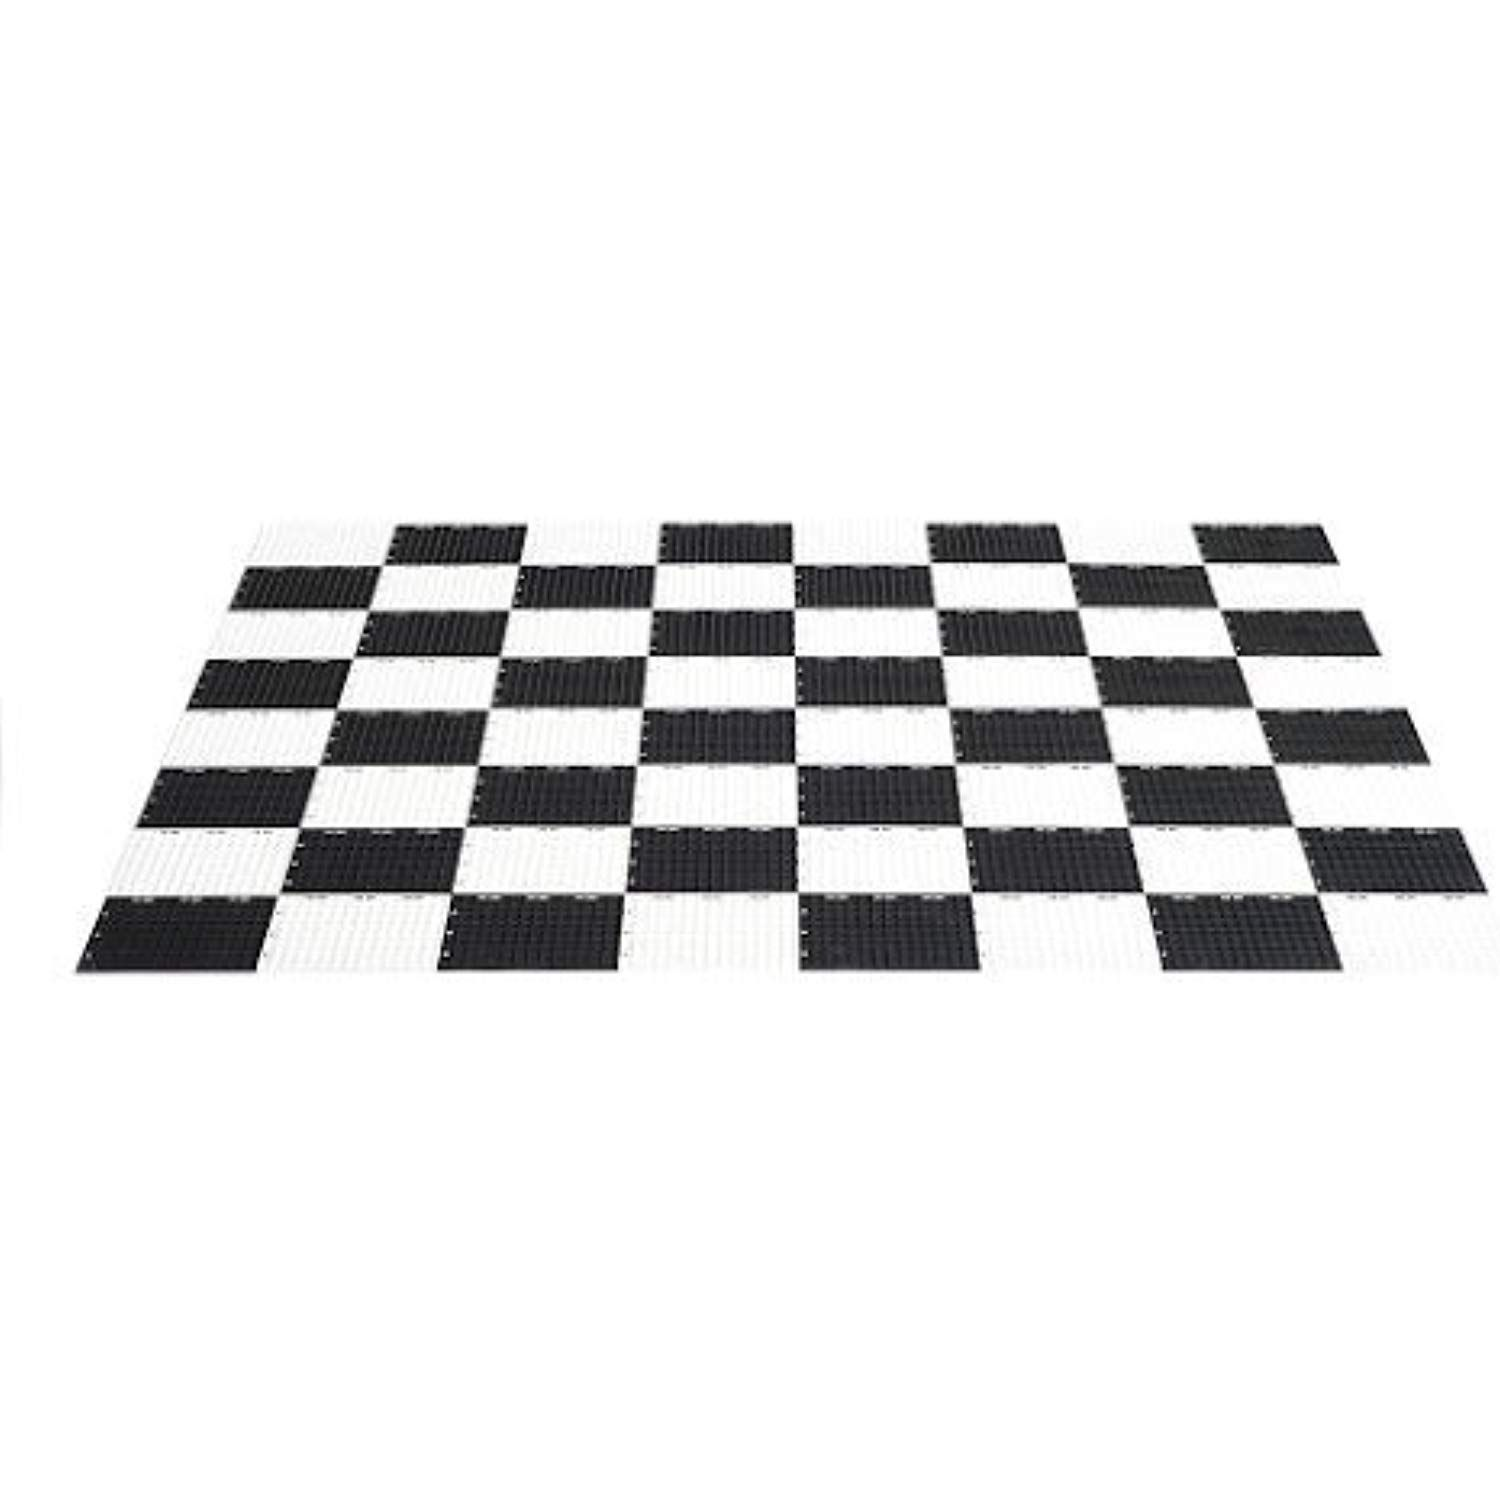 Megachess Giant Chess Game Board